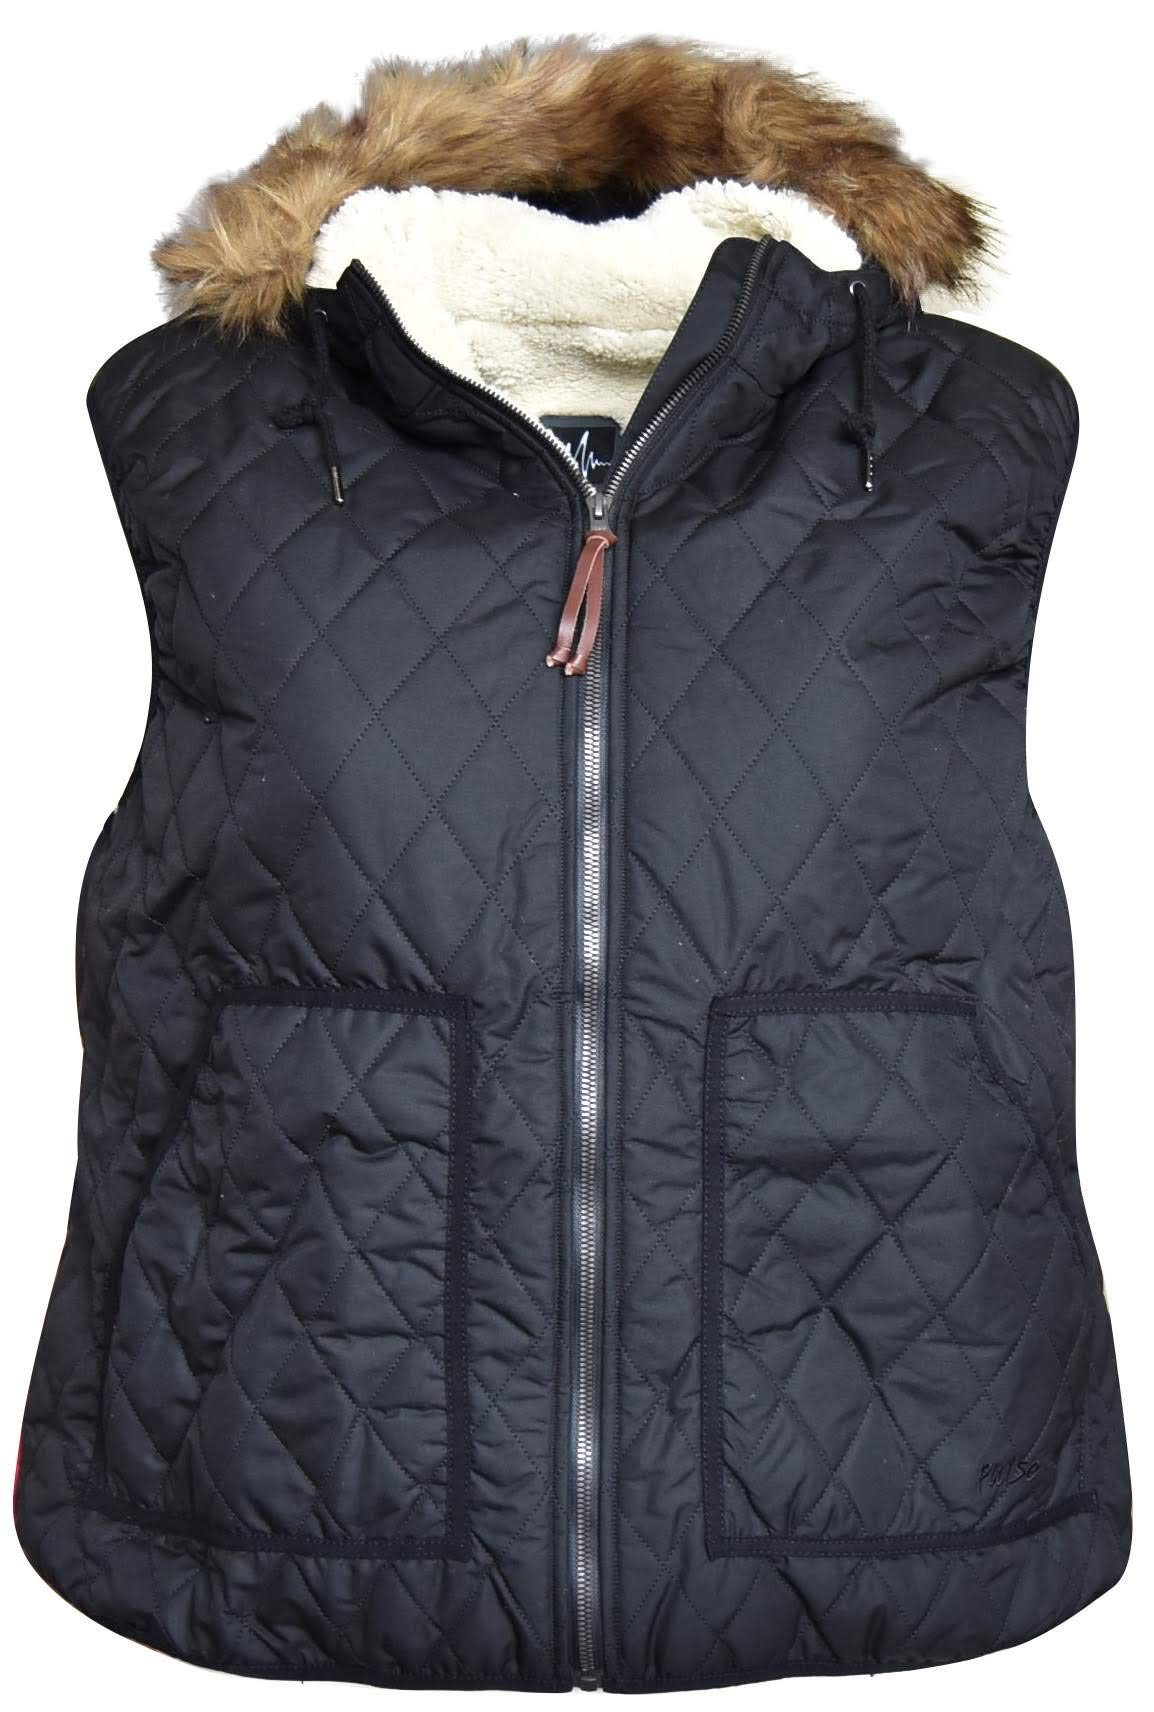 Pulse Womens Plus Extended Size Bleeker Insulated Sherpa Vest (3X (24), Black) by Pulse